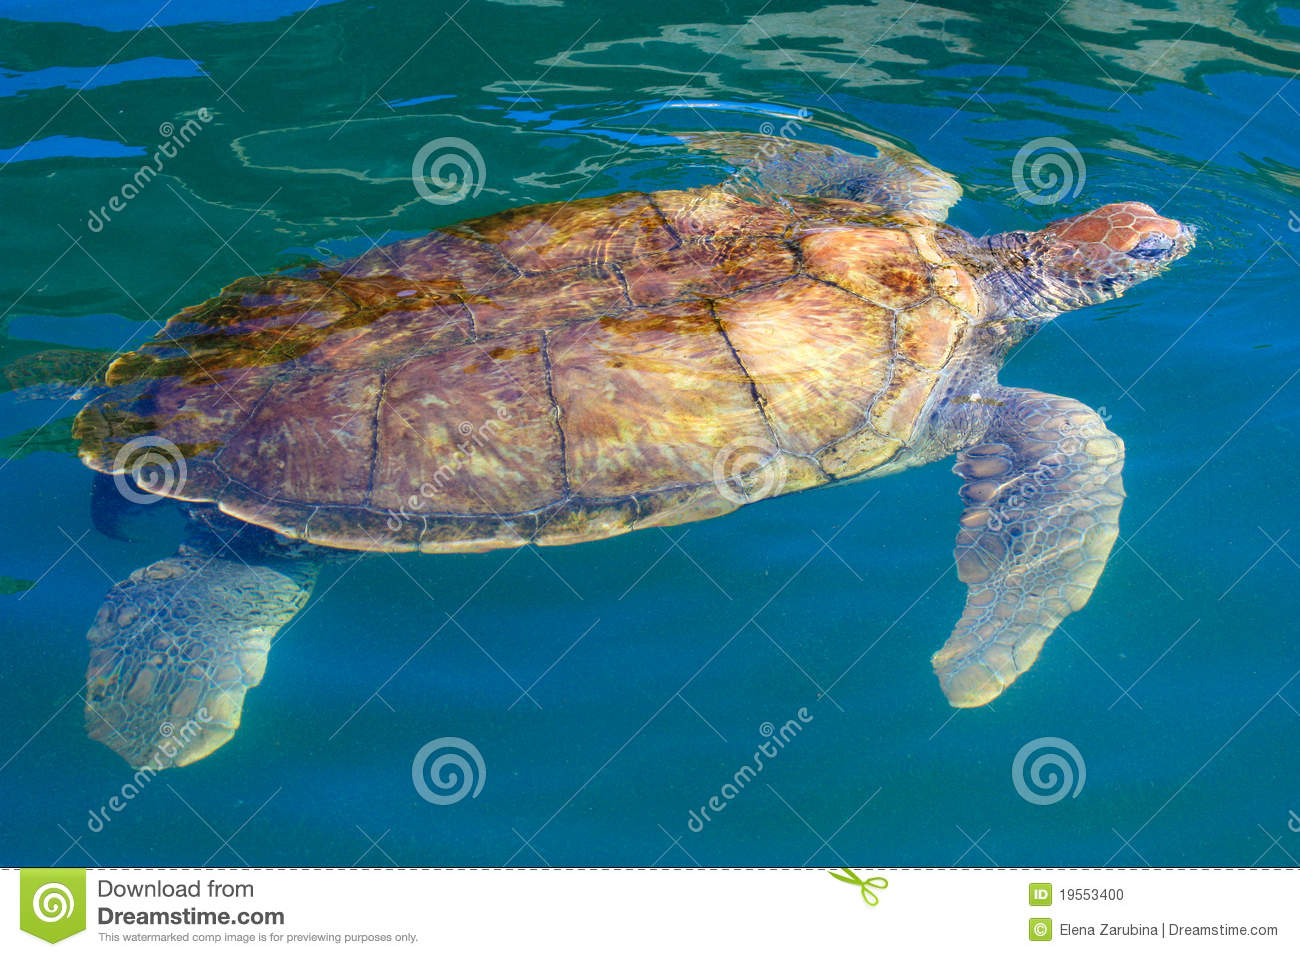 Big Sea Turtle Swimming In The Caribbean Waters Stock Photo - Image ...